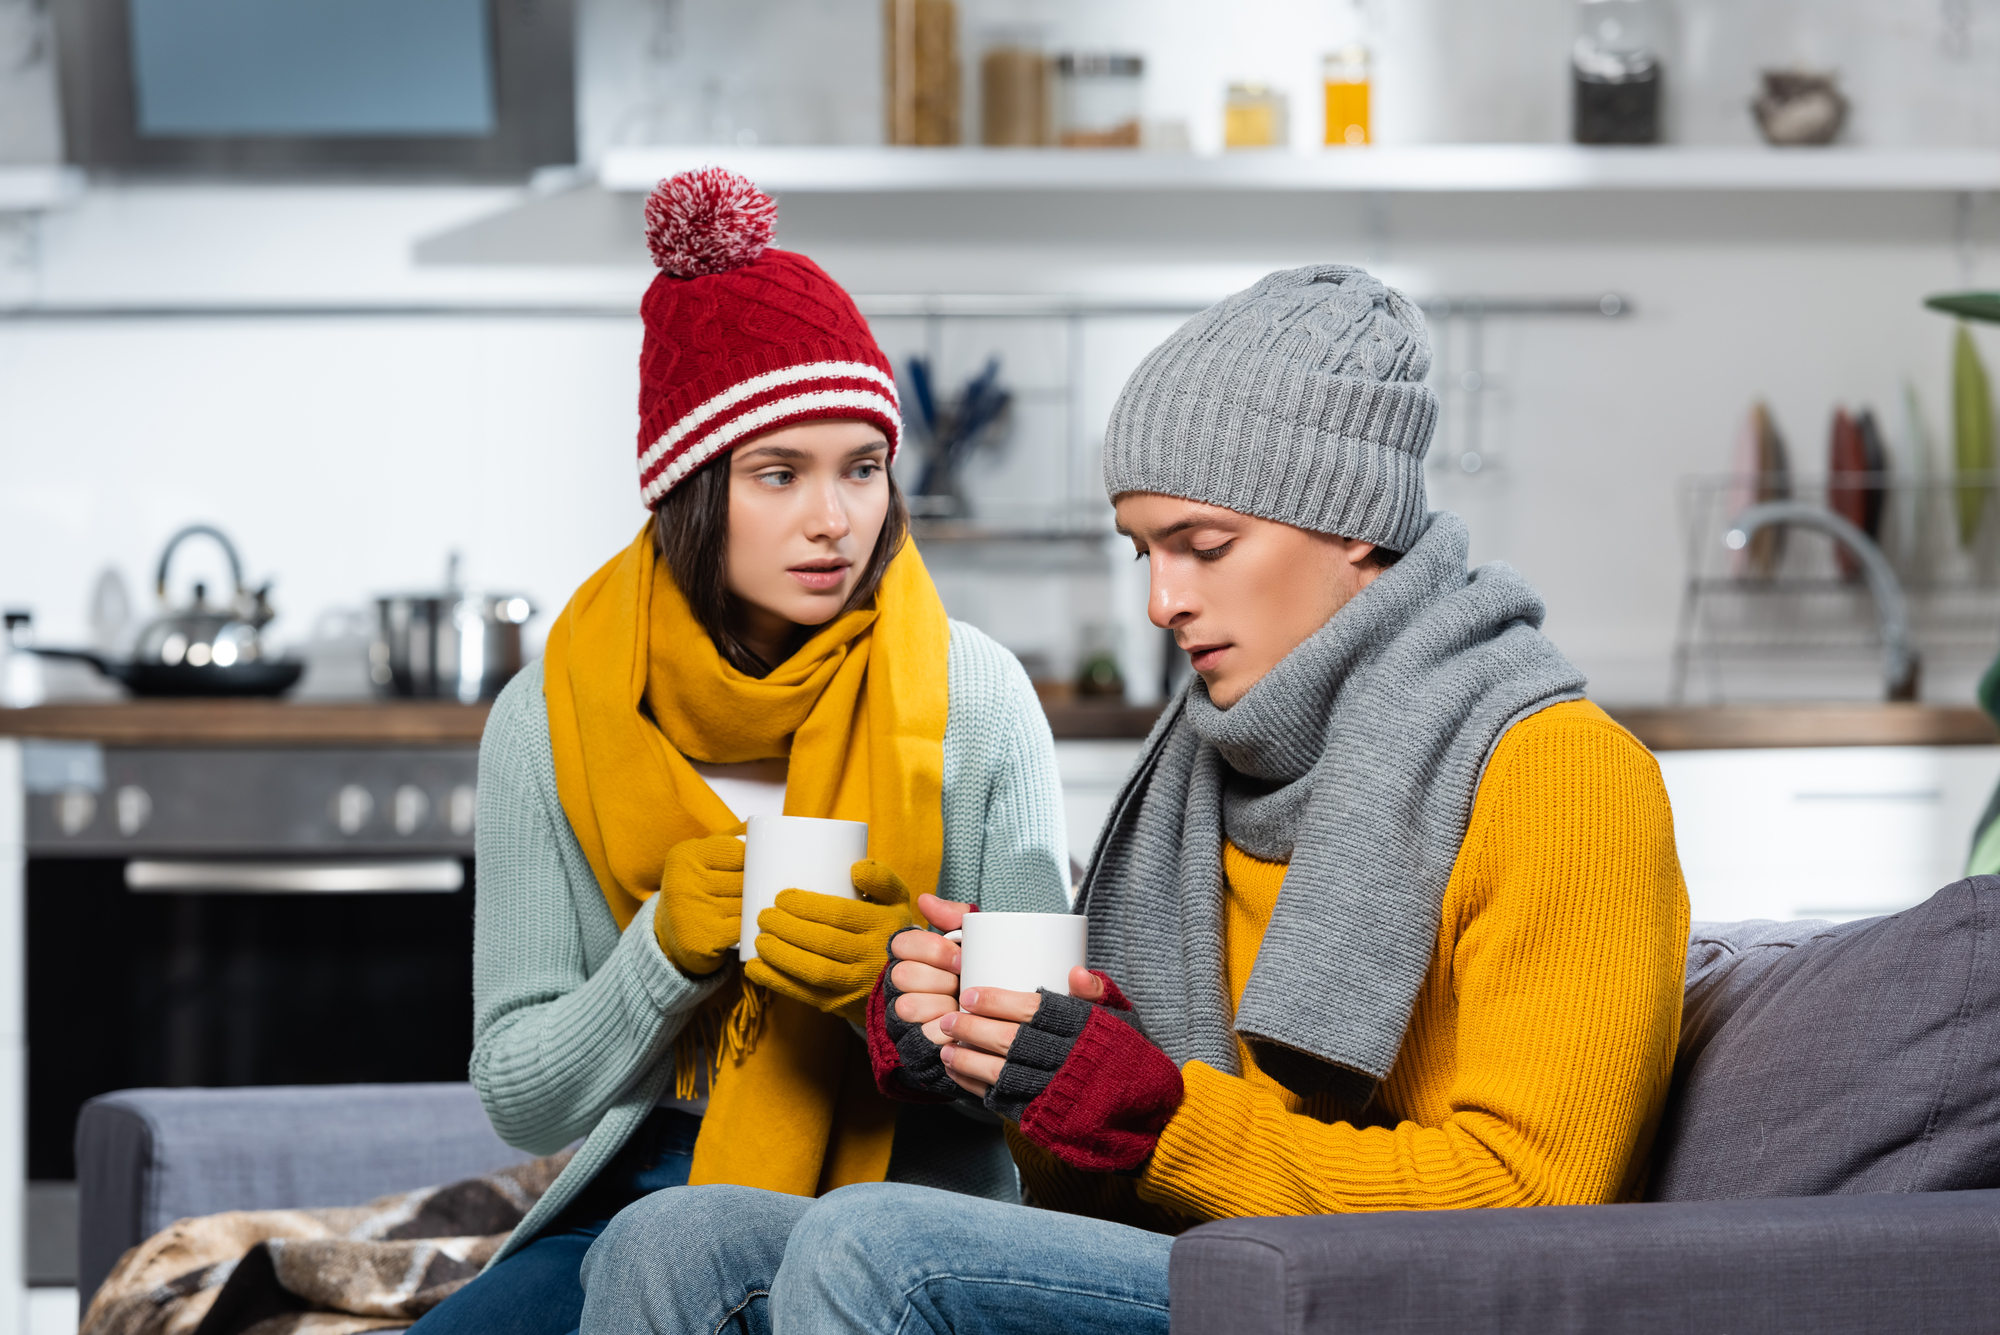 Freezing couple in knitted hats, scarfs and gloves holding cups of warming beverage in cold kitchen